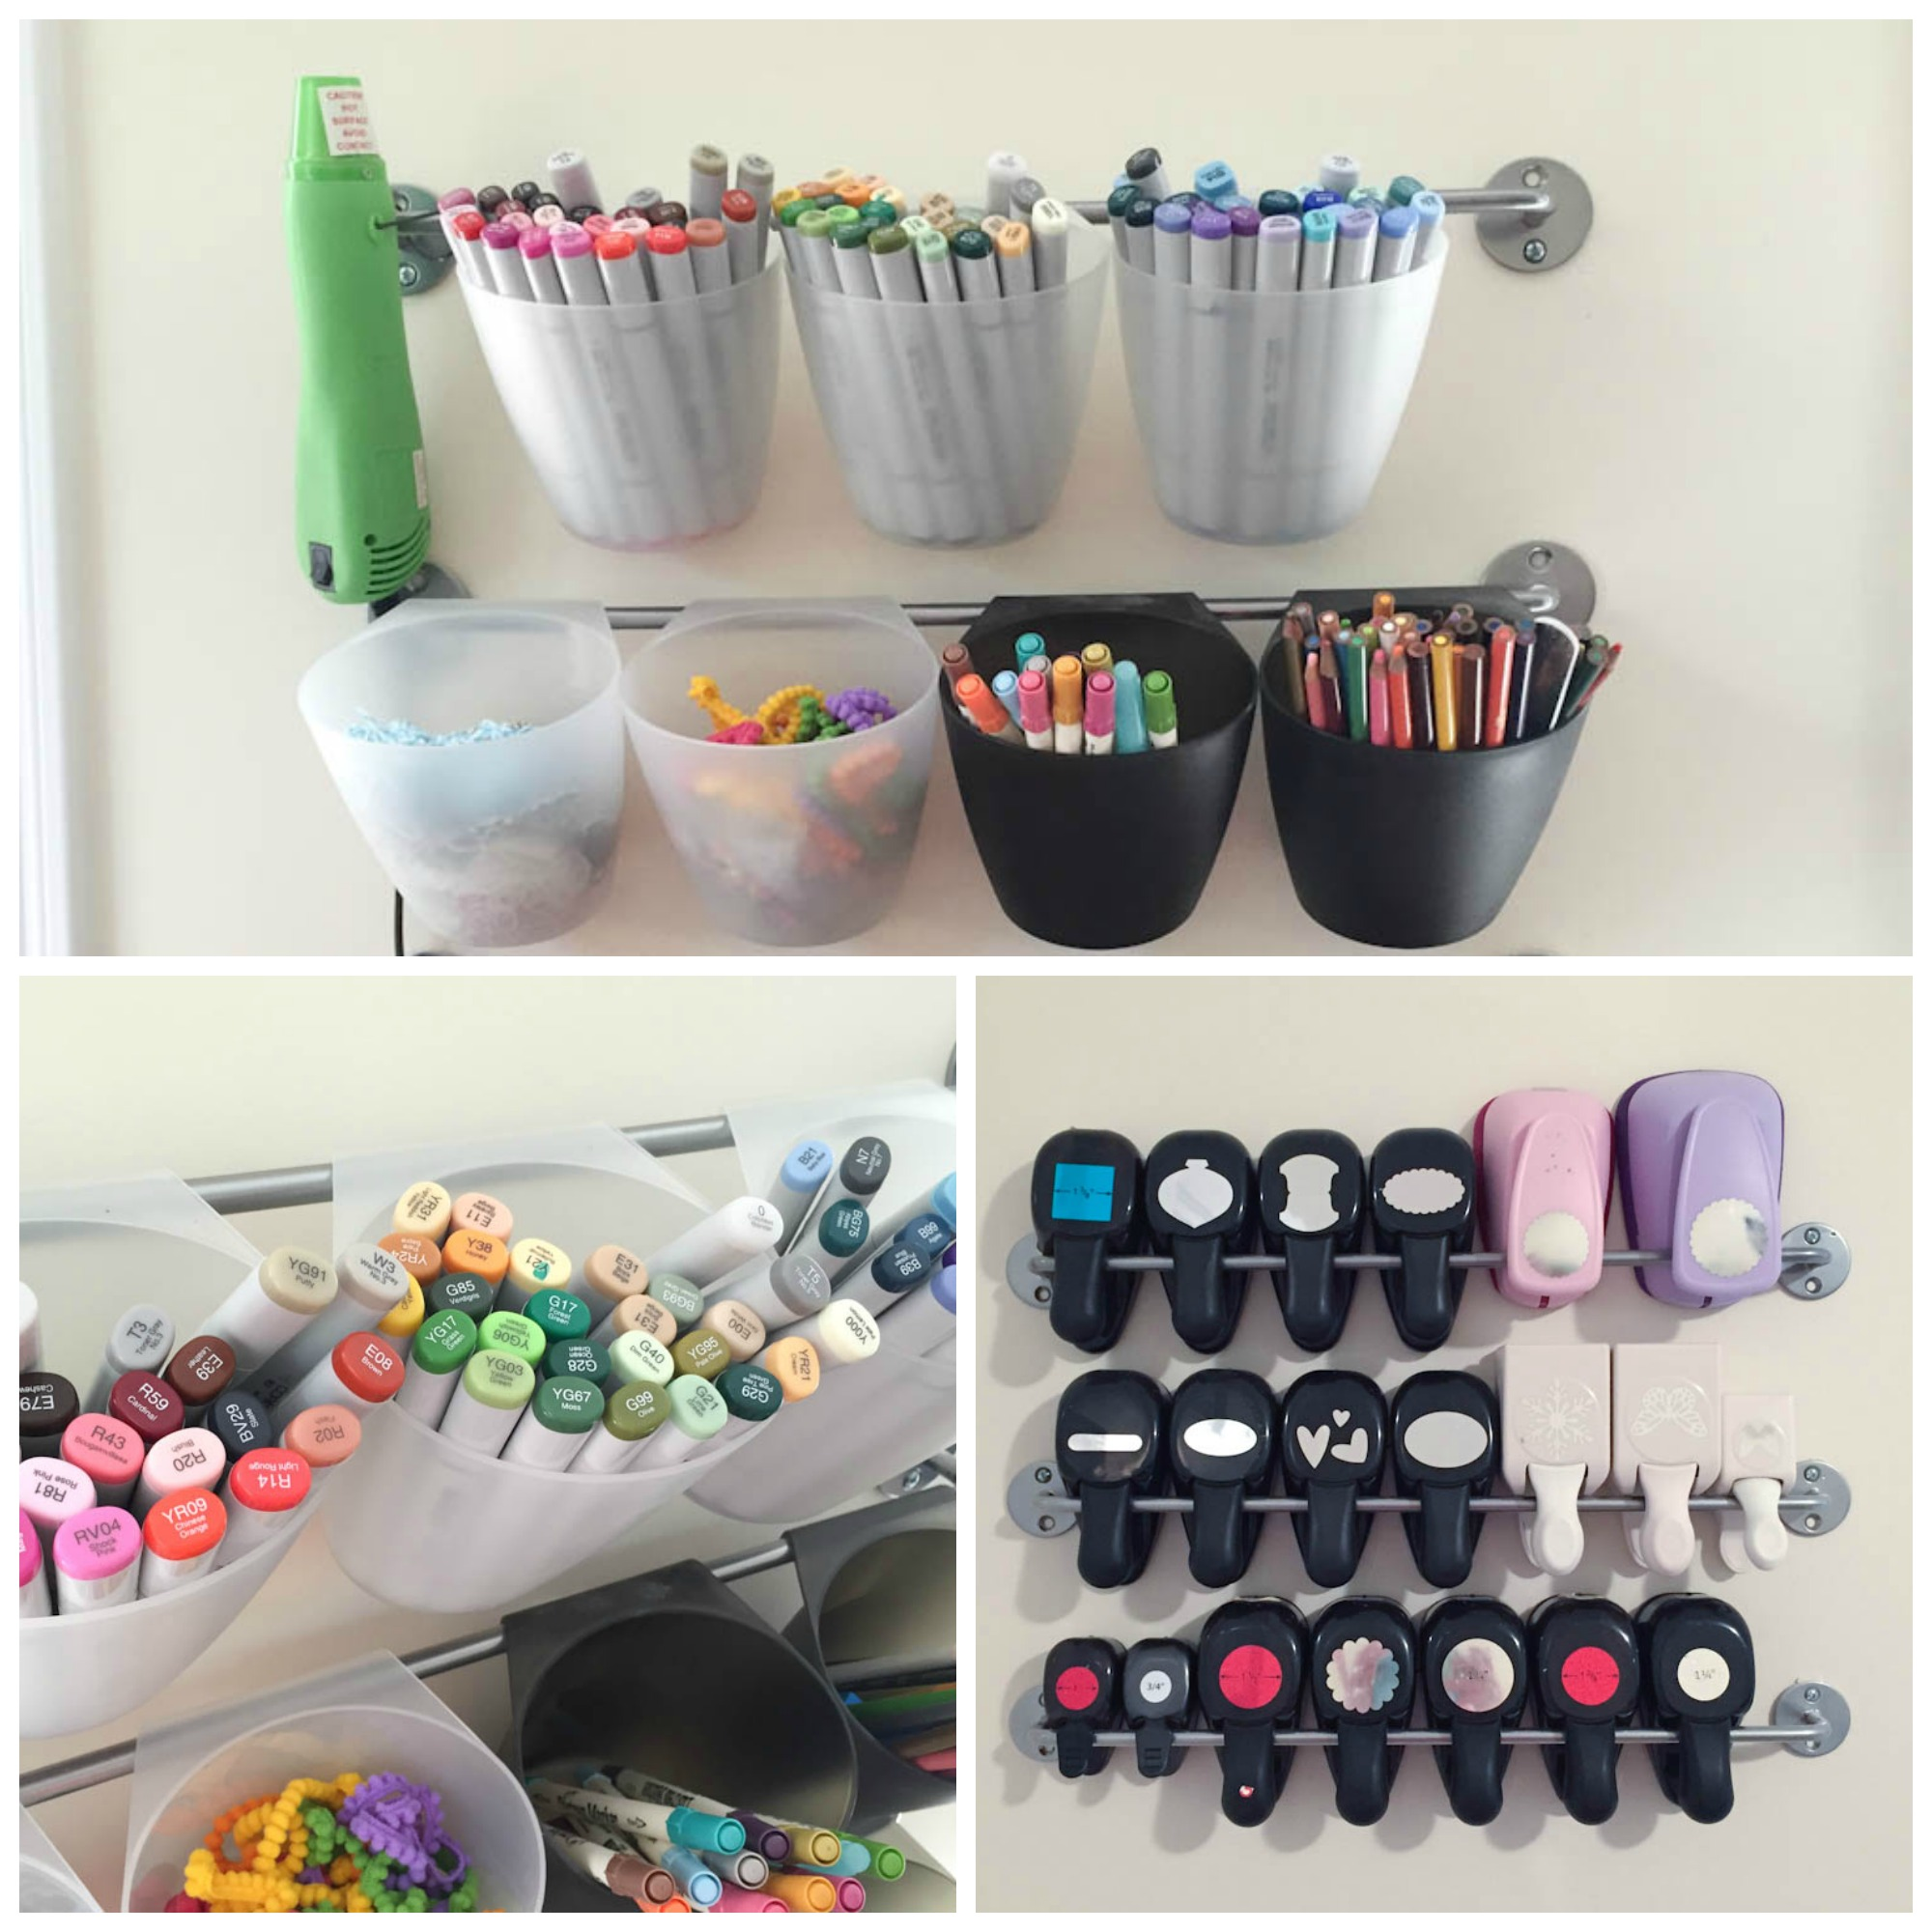 organized markers